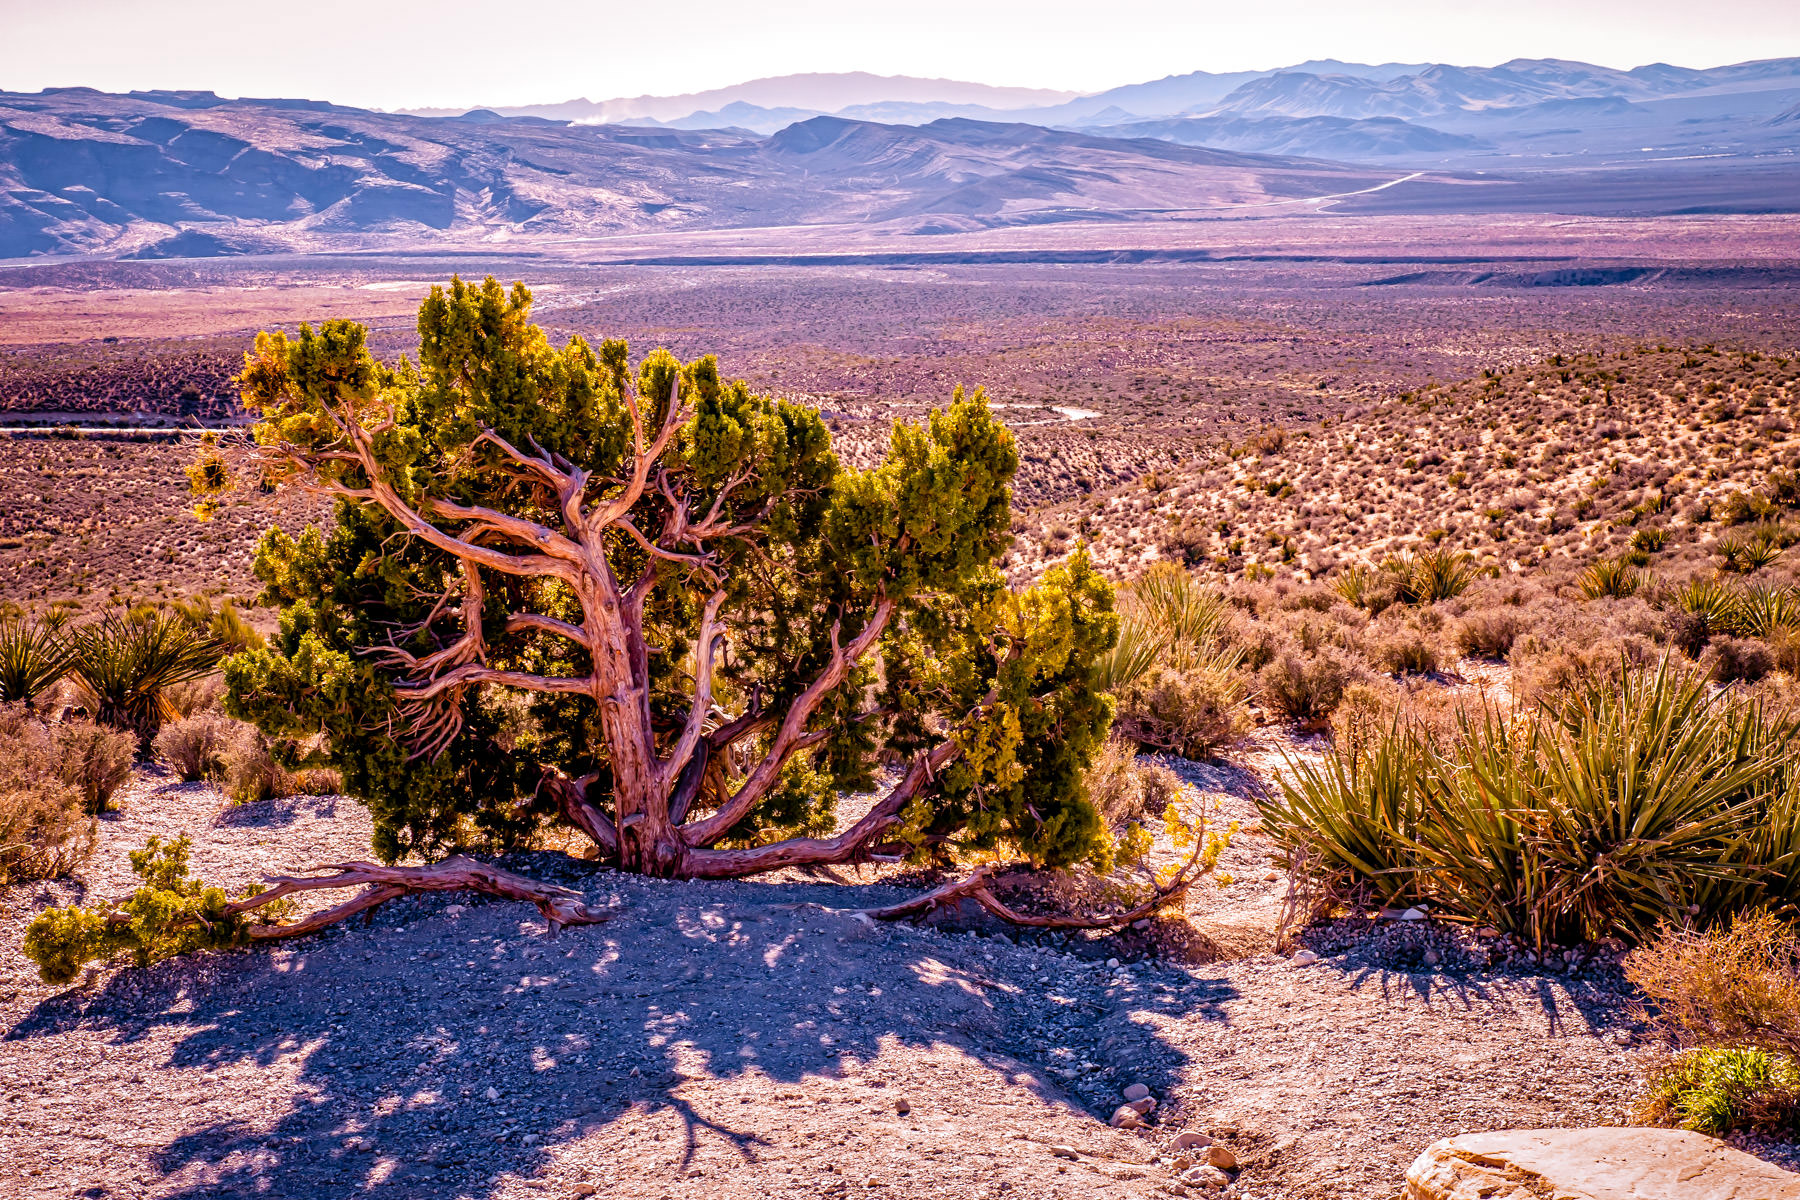 A twisted tree withers in the desert sun at Nevada's Red Rock Canyon.